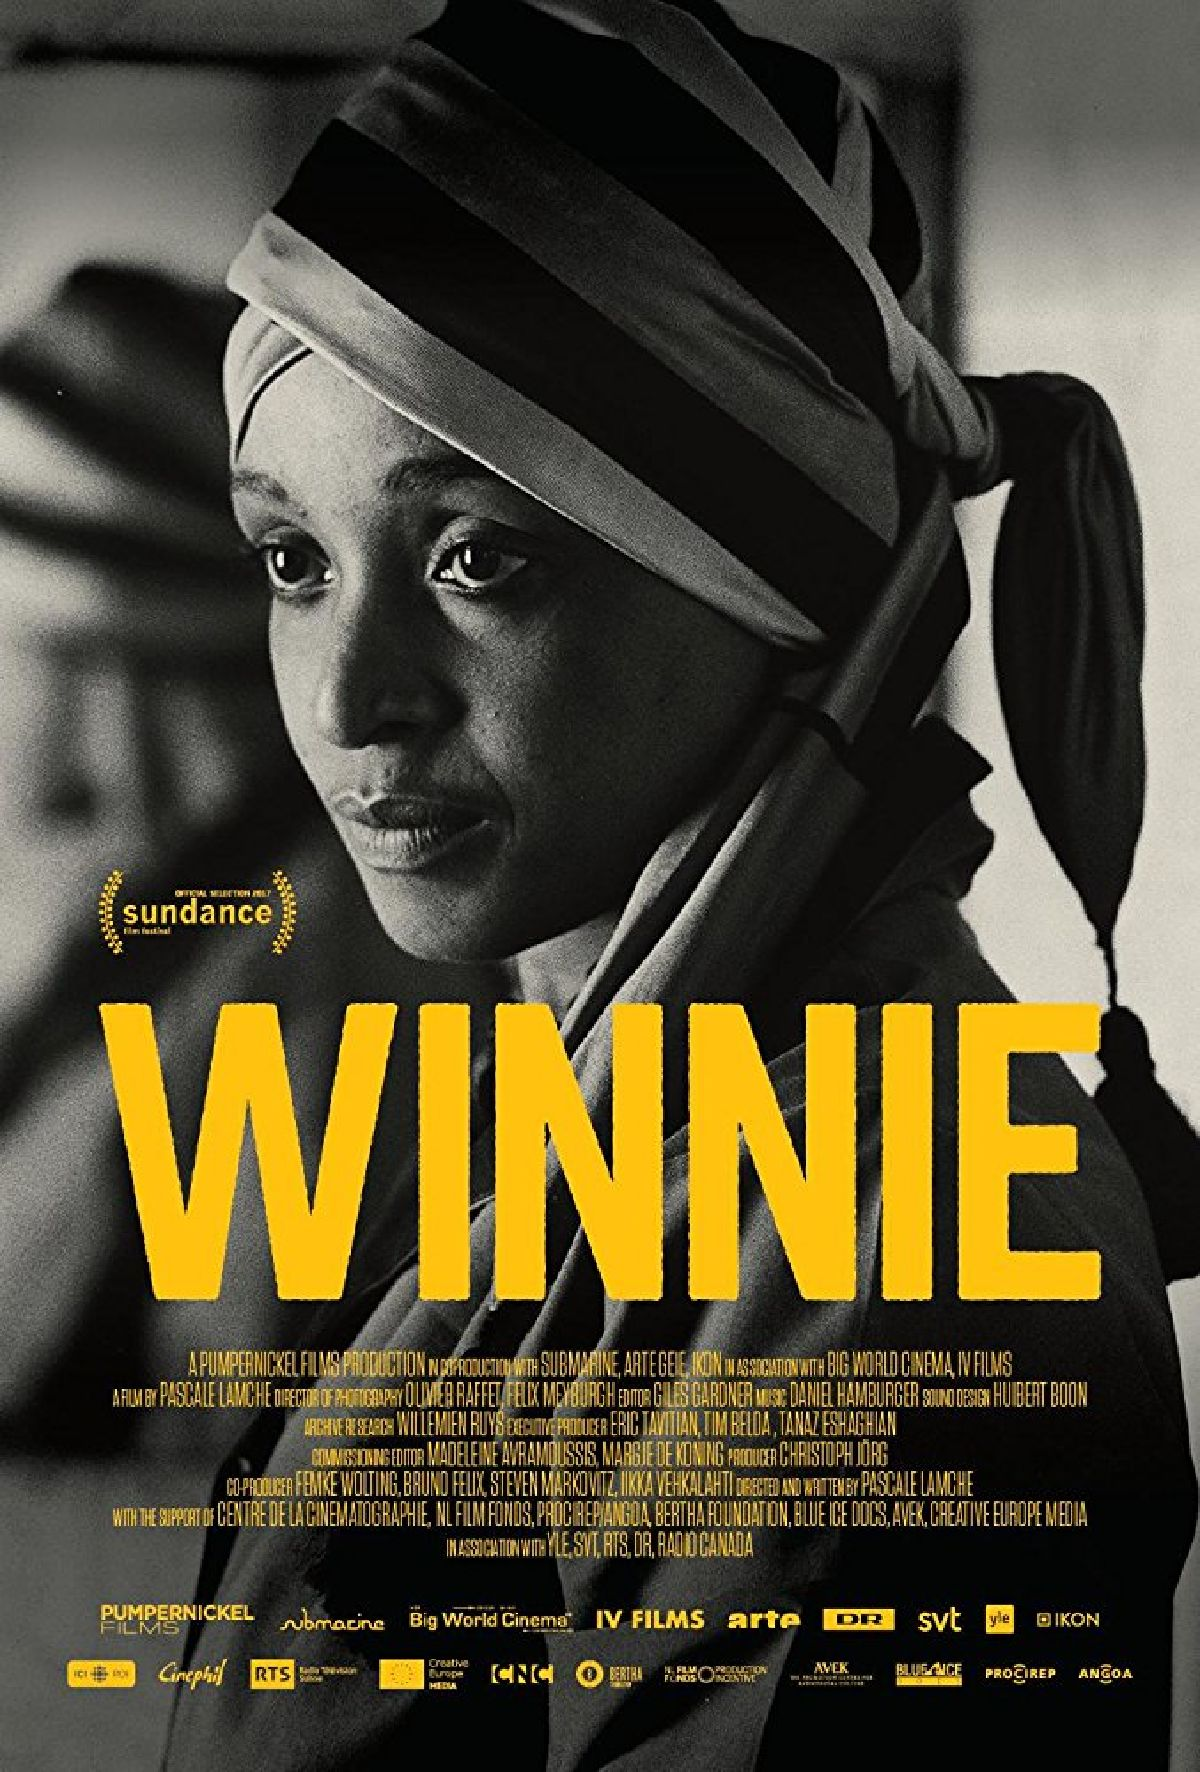 'Winnie' movie poster